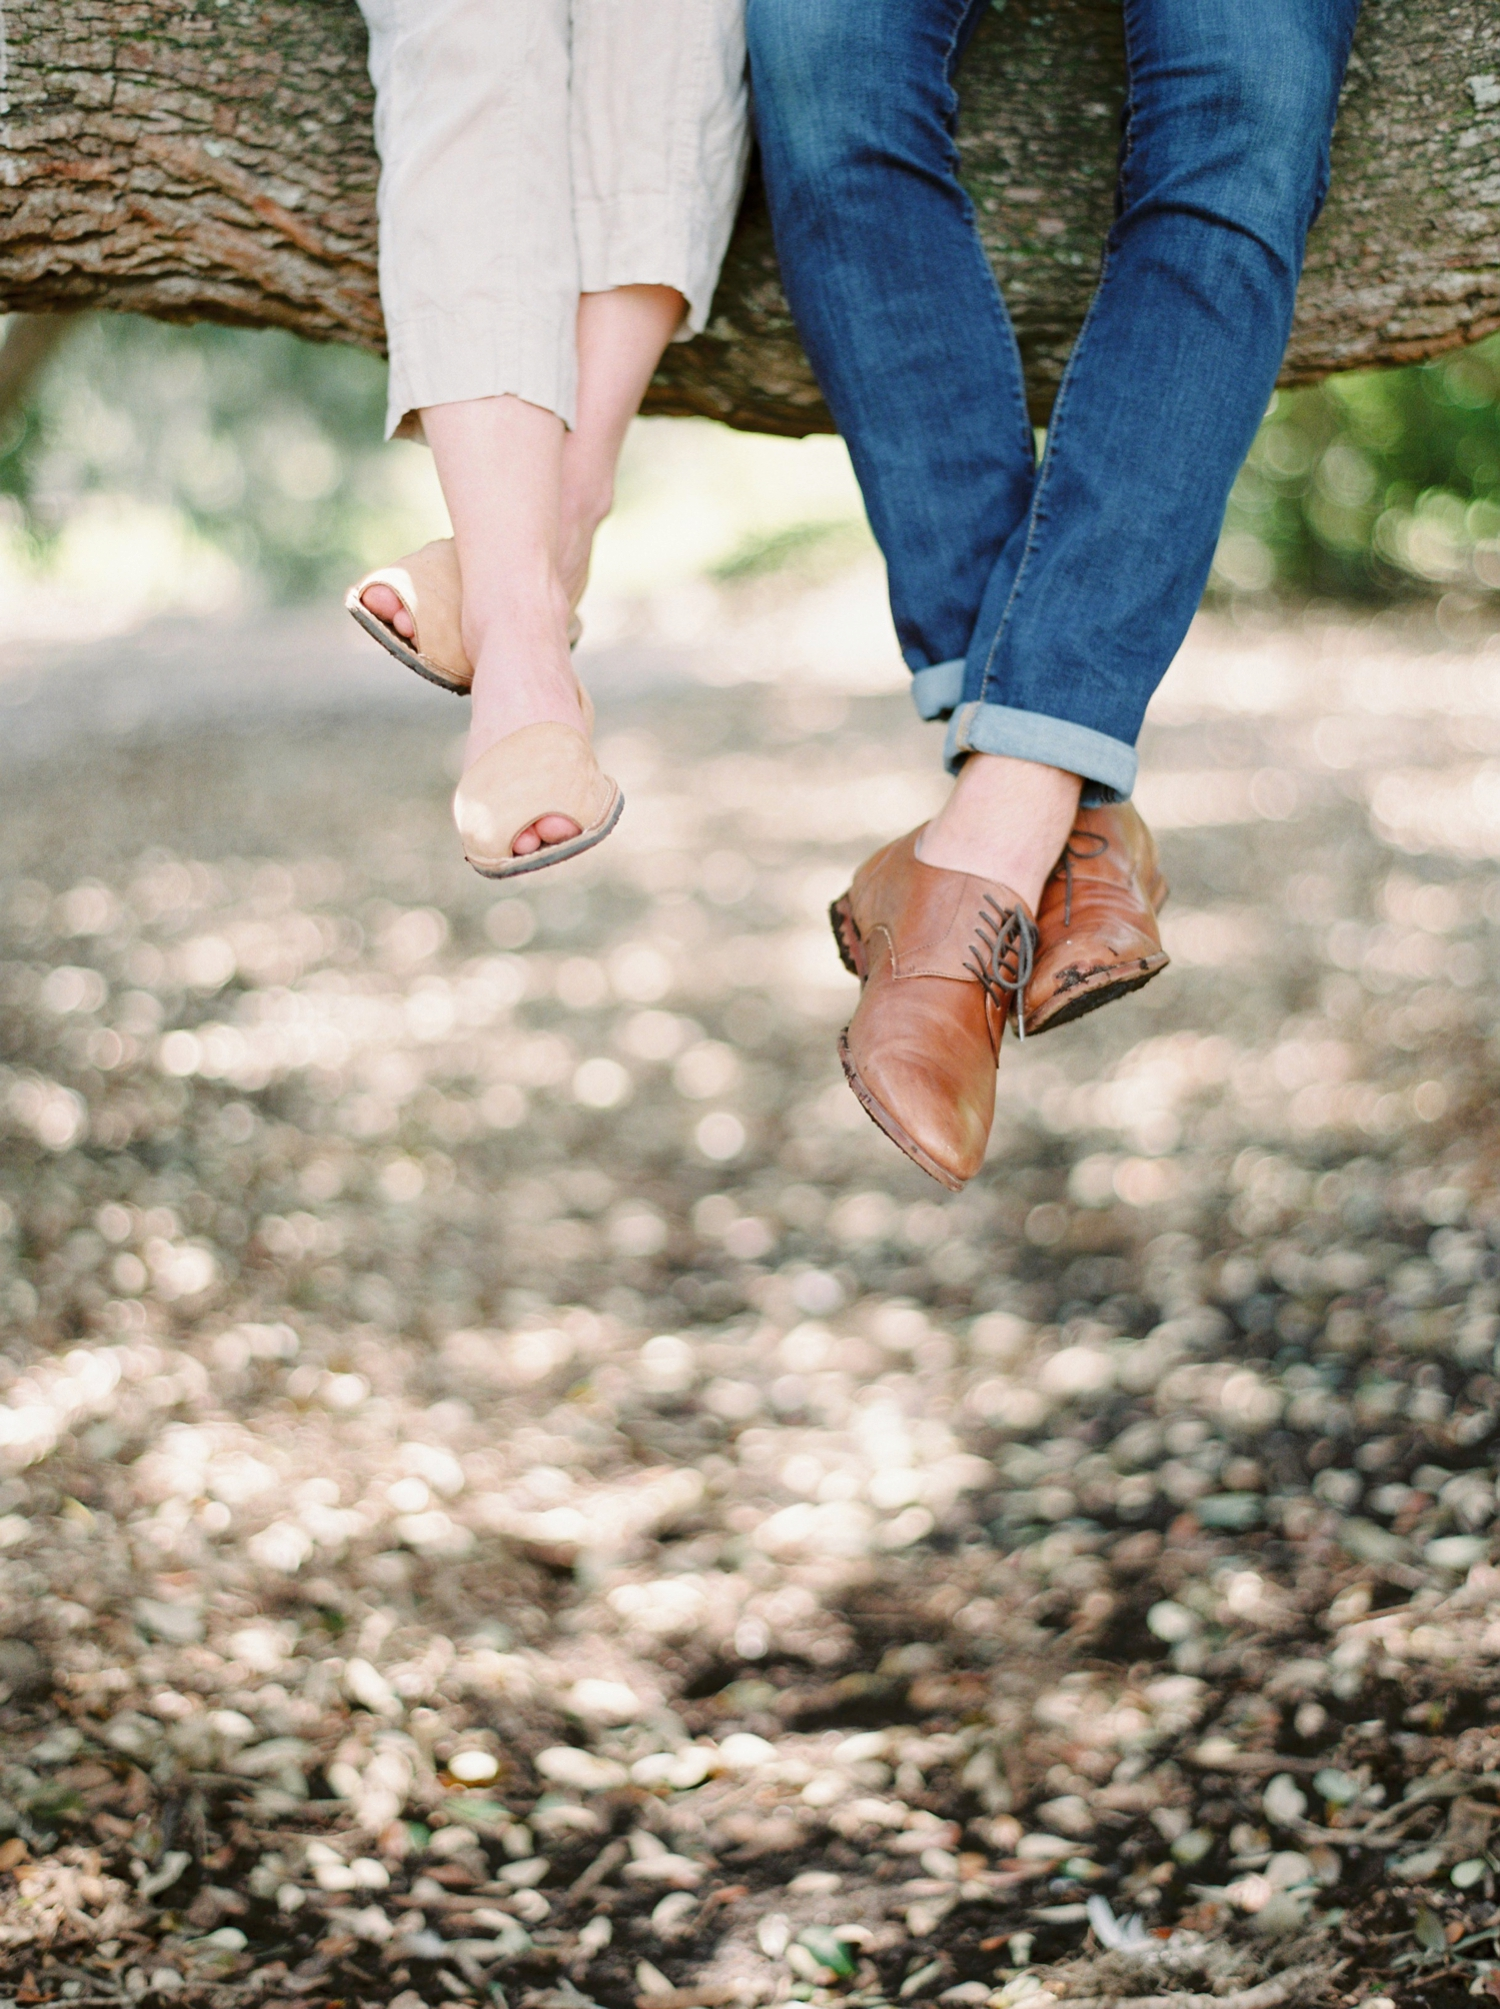 on wedding photographers | charleston anniversary | Justine Milton fine art film Photography | south carolina anniversary | fine art film photography | shoes